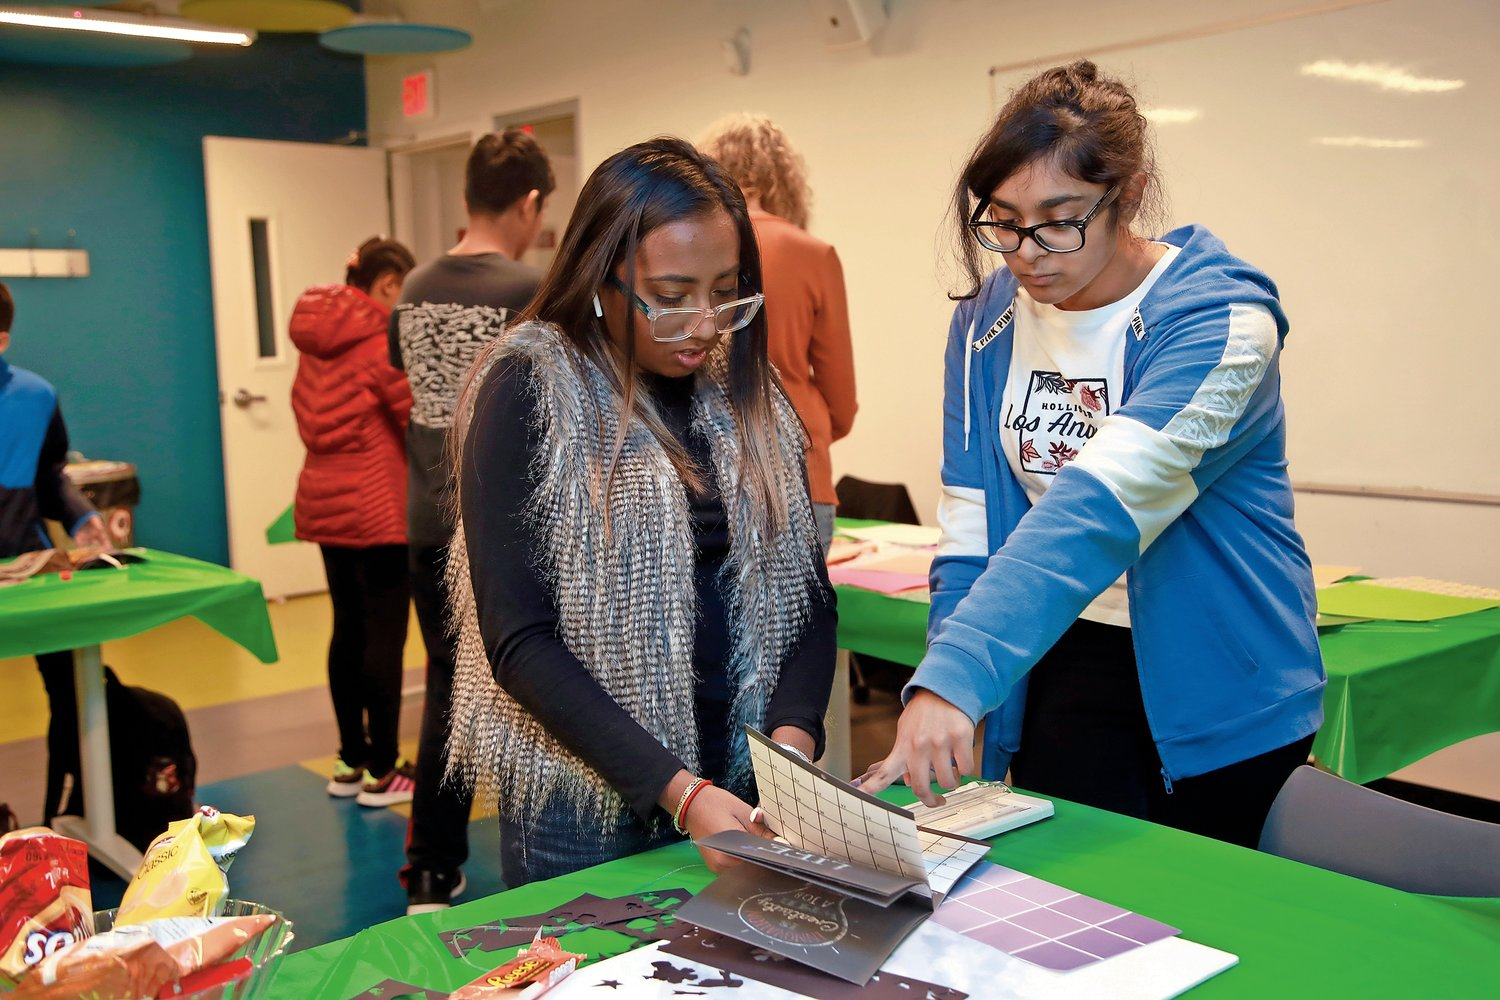 Elmont Memorial High School senior Natalia Bisnauth, left, and freshman Emily Sukhnandan looked for inspirational sayings from a calendar to use on vision boards that they made at the Elmont Memorial Library.